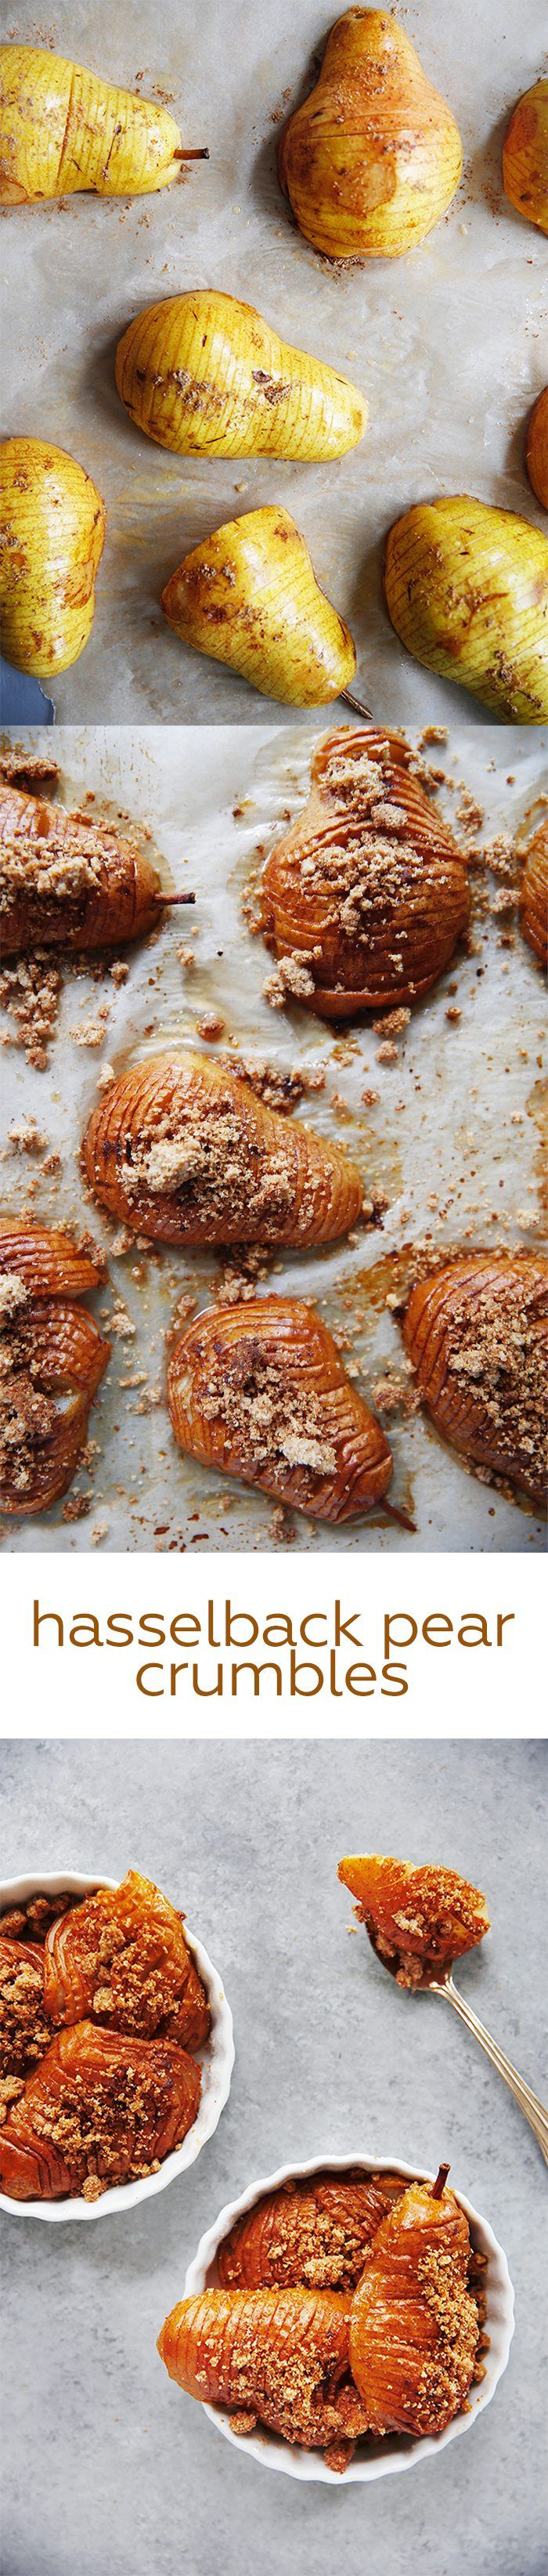 Hasselback Pear Crumbles (gluten-free and grain-free) | Lexi's Clean Kitchen